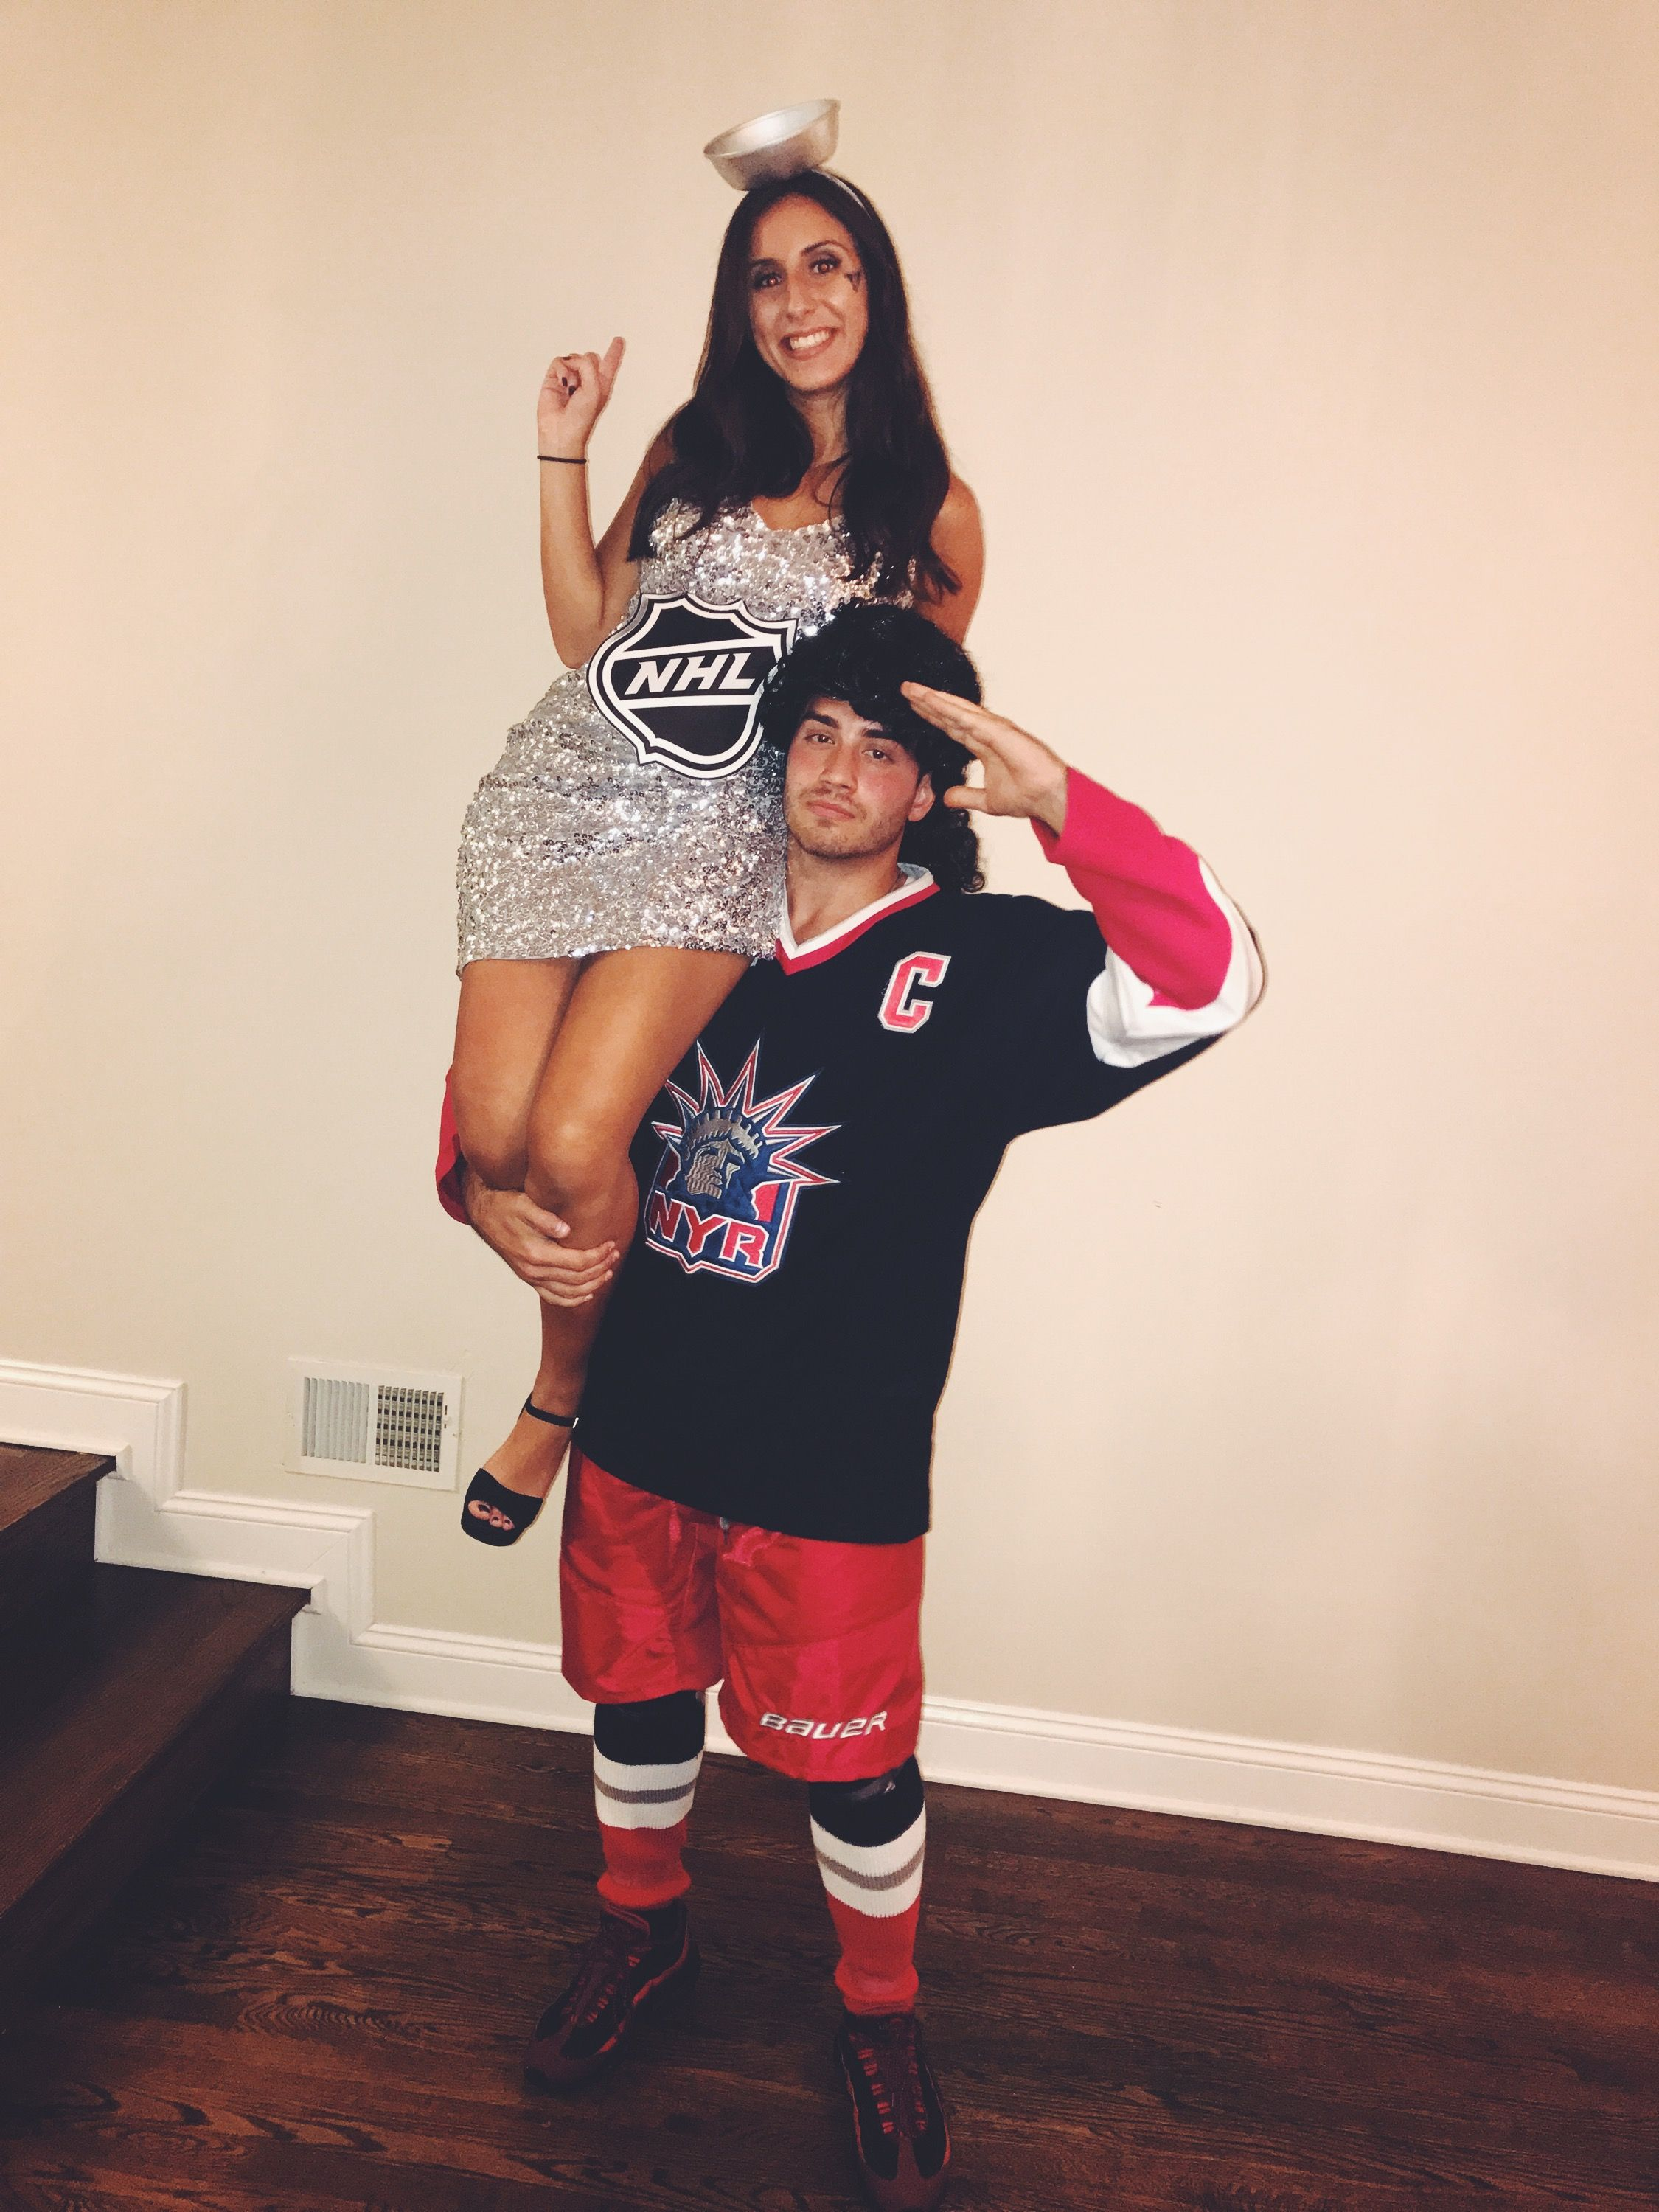 Stanley Cup And Hockey Player Couples Costume Couple Halloween Costumes Halloween Costumes Diy Couples Halloween Costumes